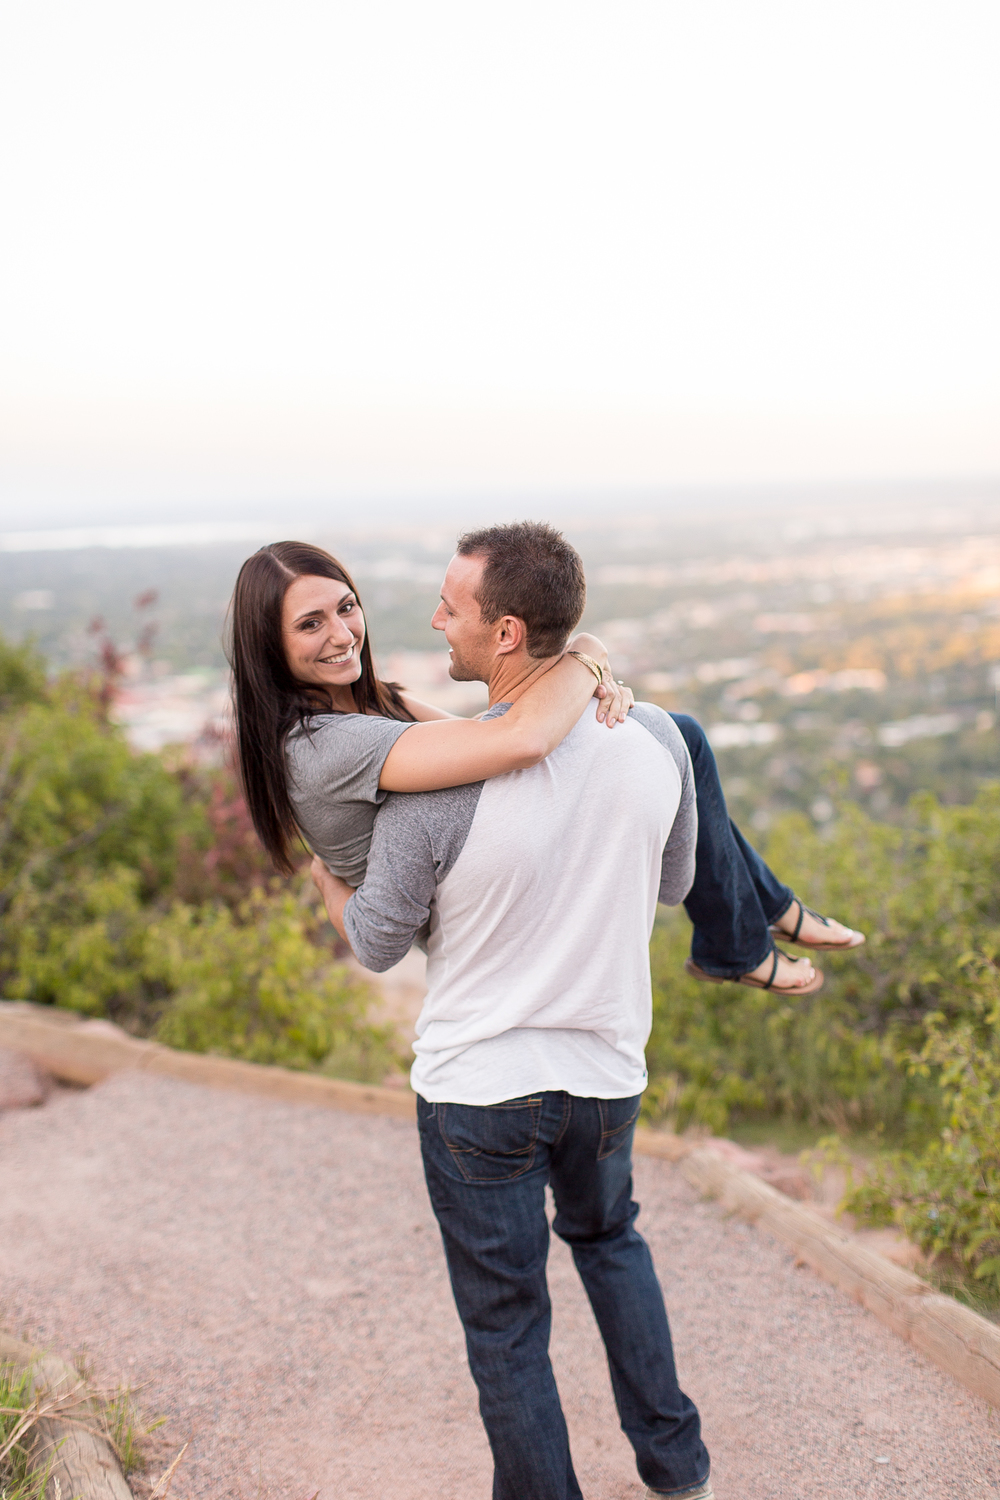 Colorado Engagement Photography by TréCreative (101 of 111).jpg